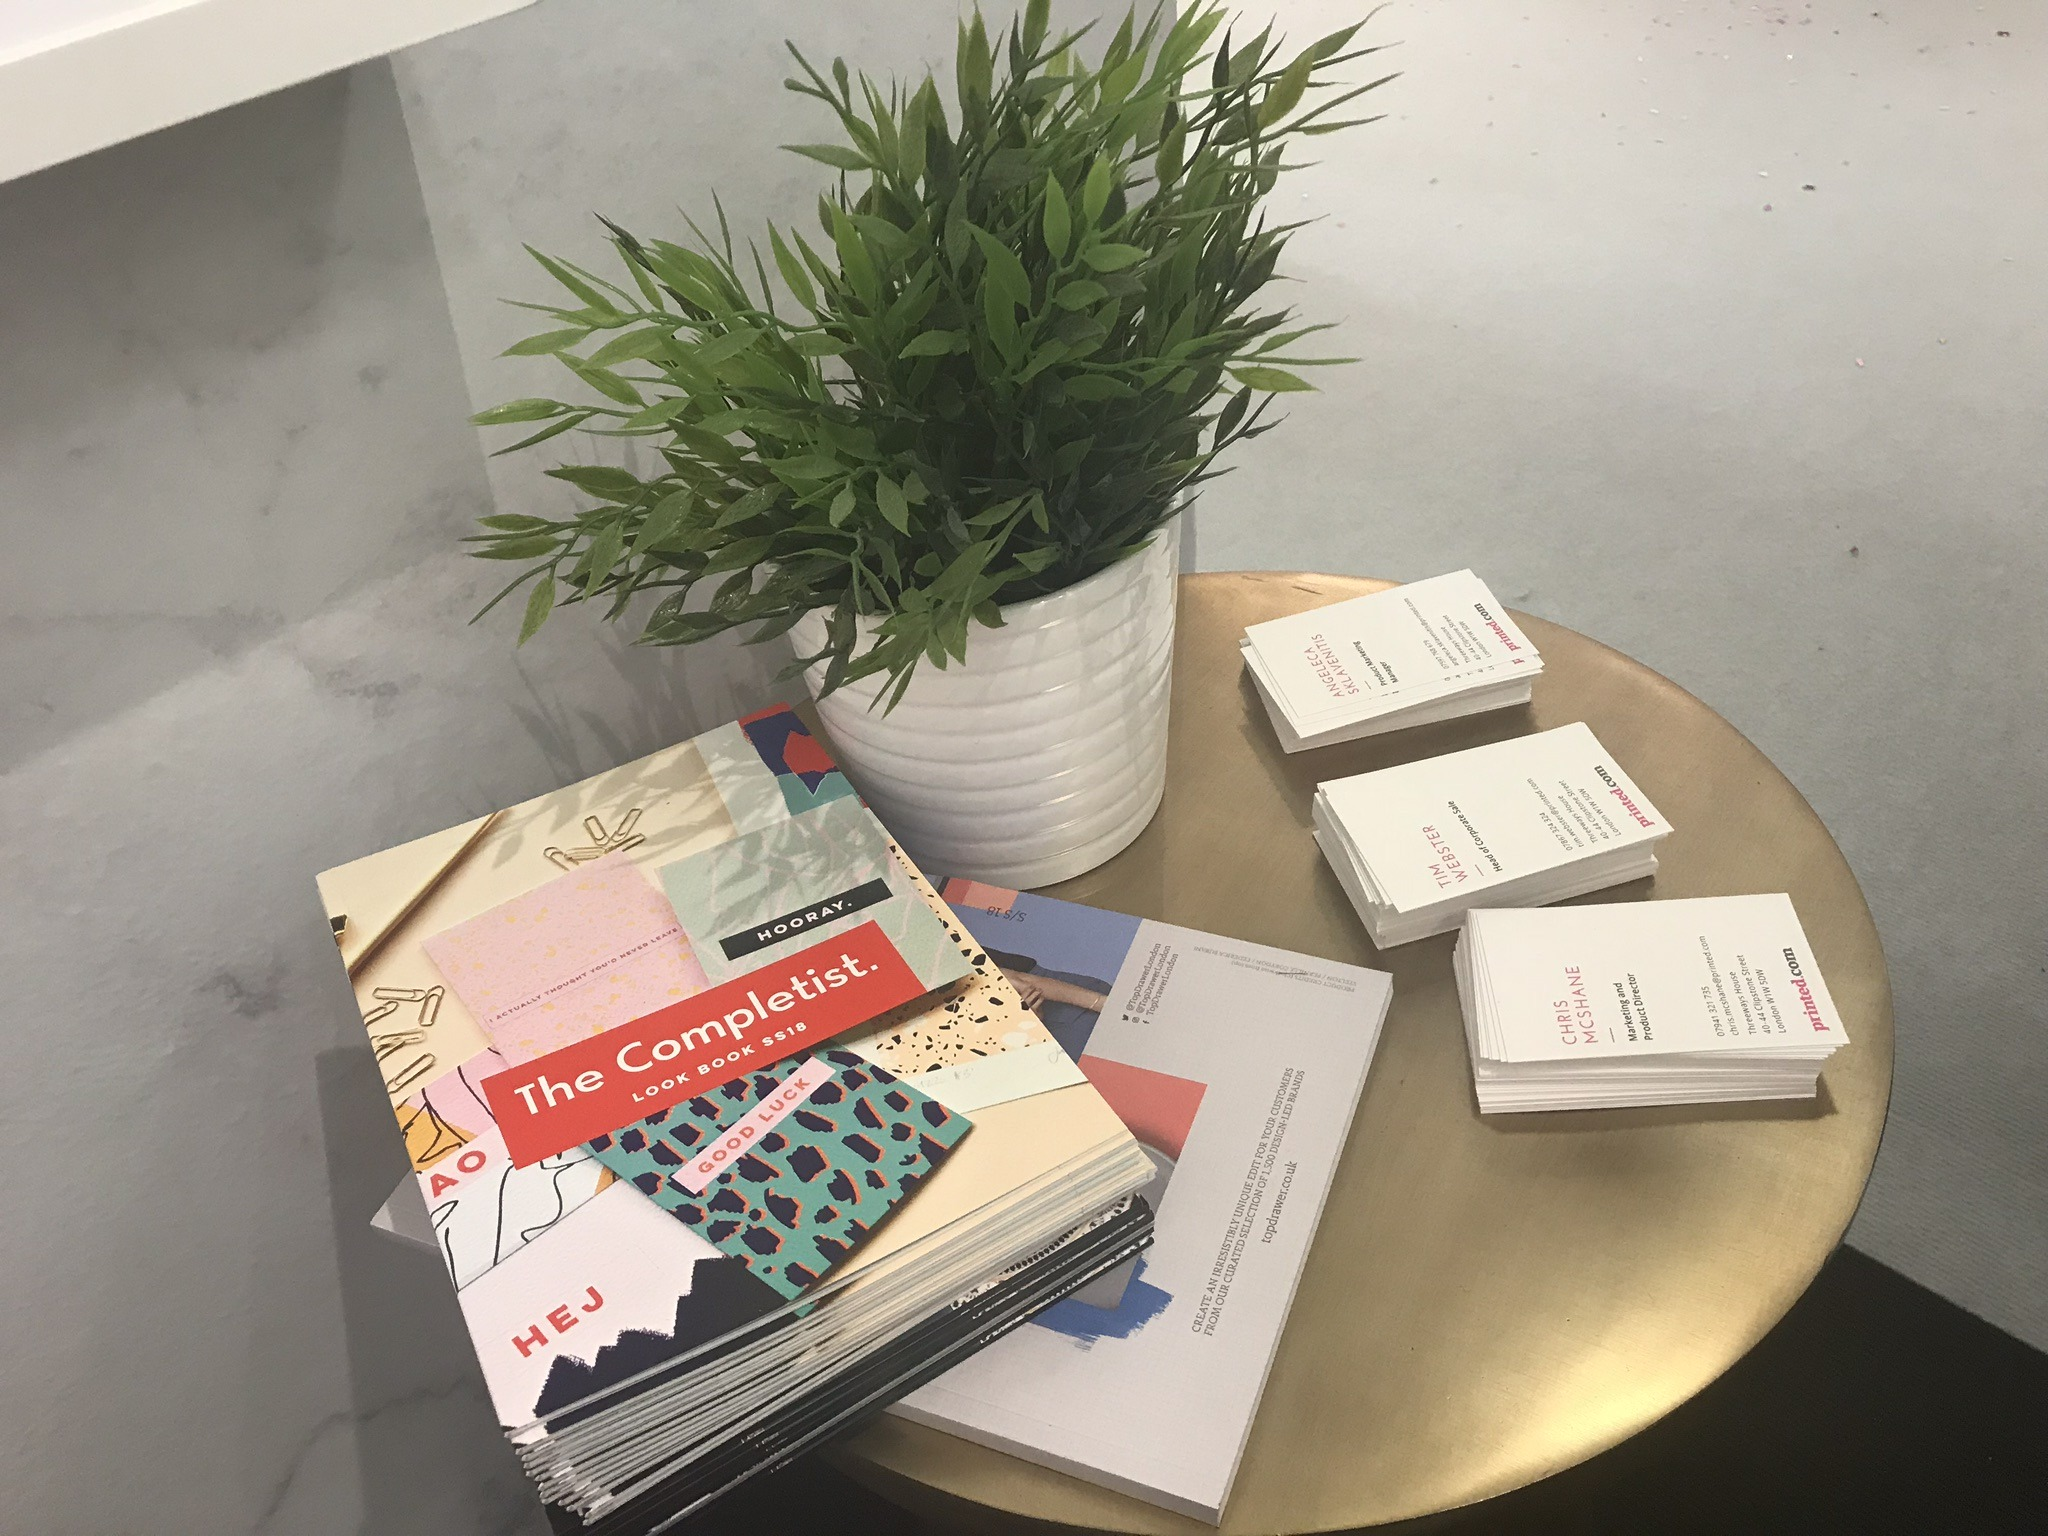 Exhibition tips from Printed.com